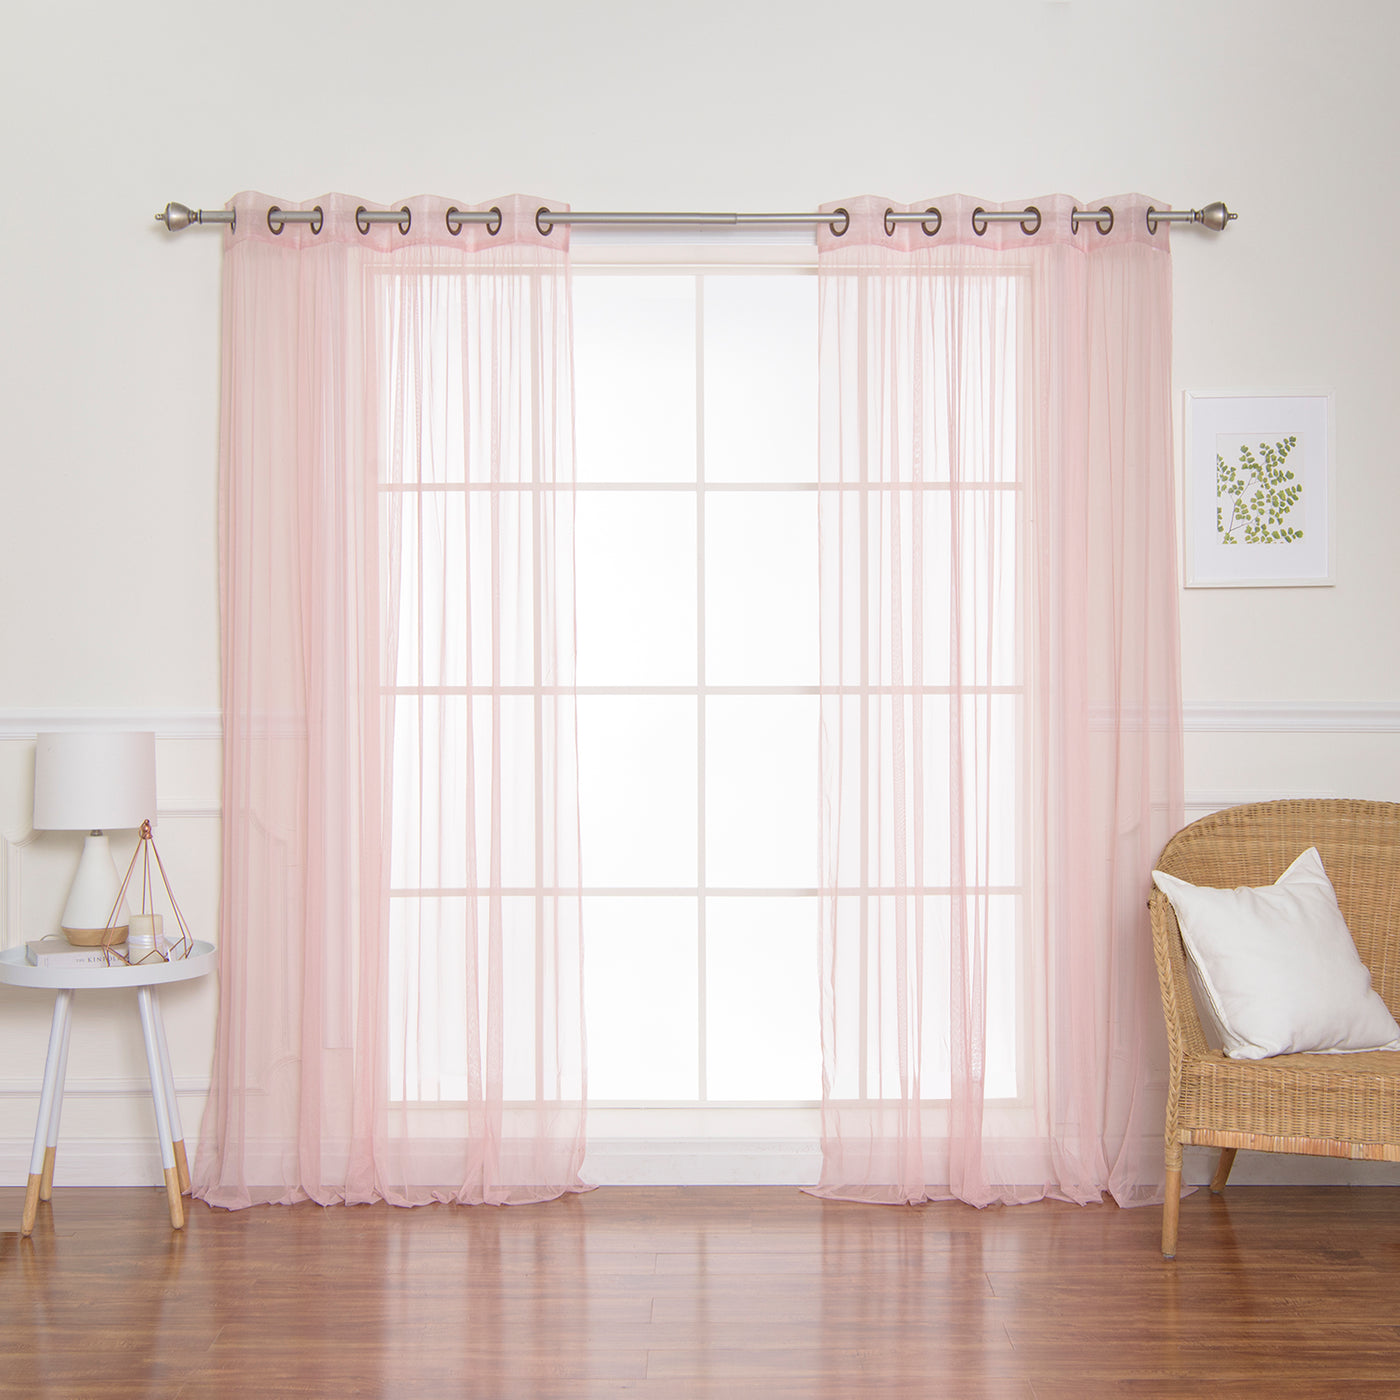 Colored Tulle Curtains